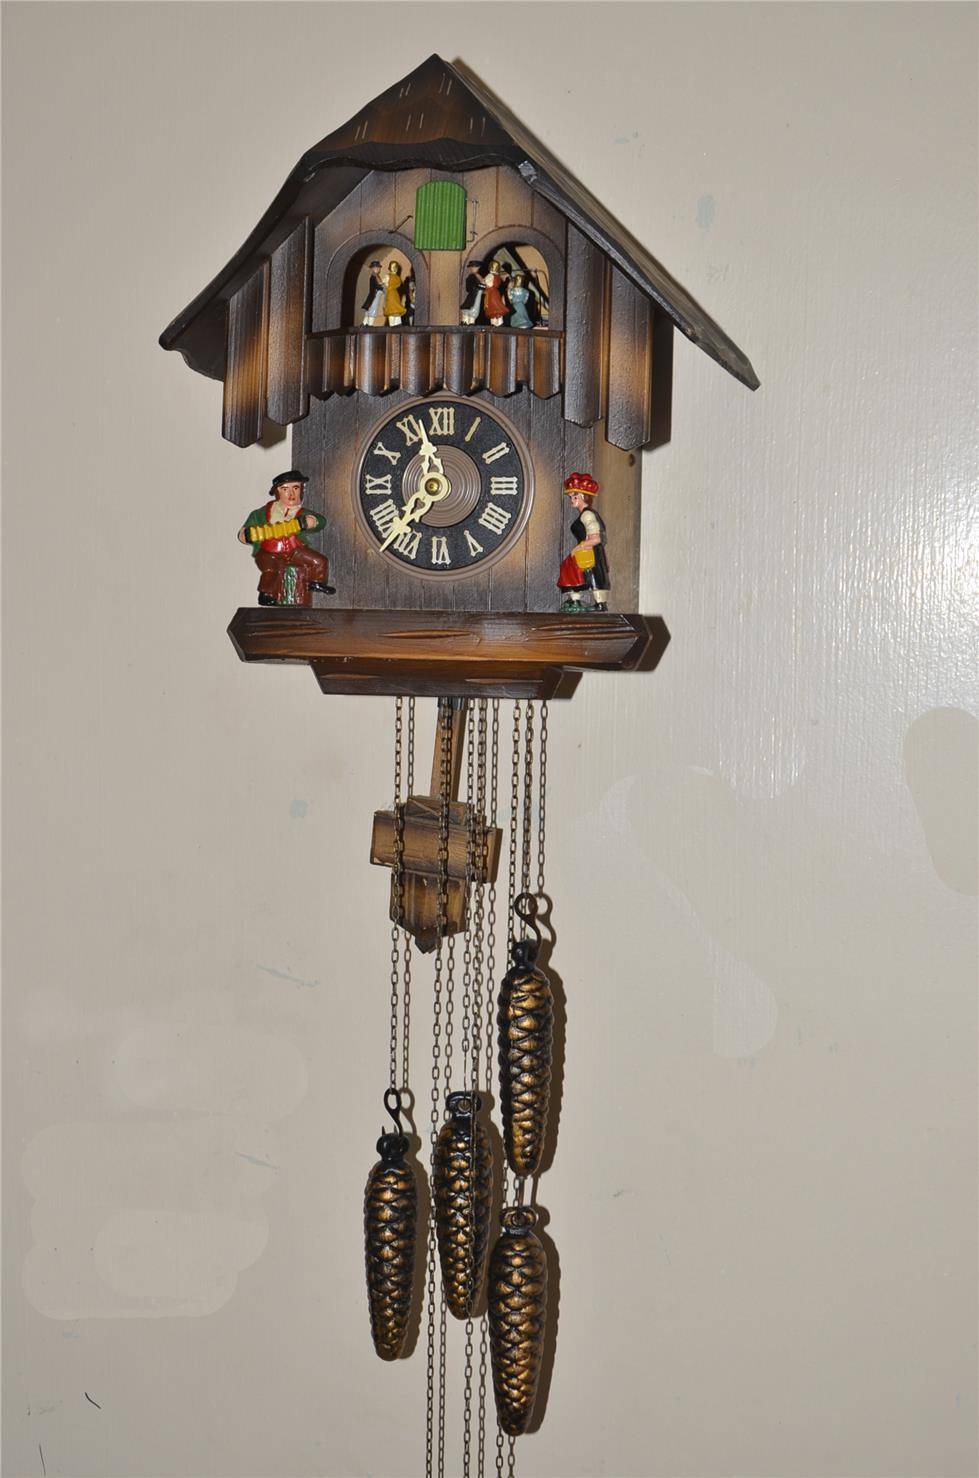 Antique vintage mechanical pendulum cuckoo wall cl end 2 28 2016 2 15 00 pm - Cuckoo clock pendulum ...